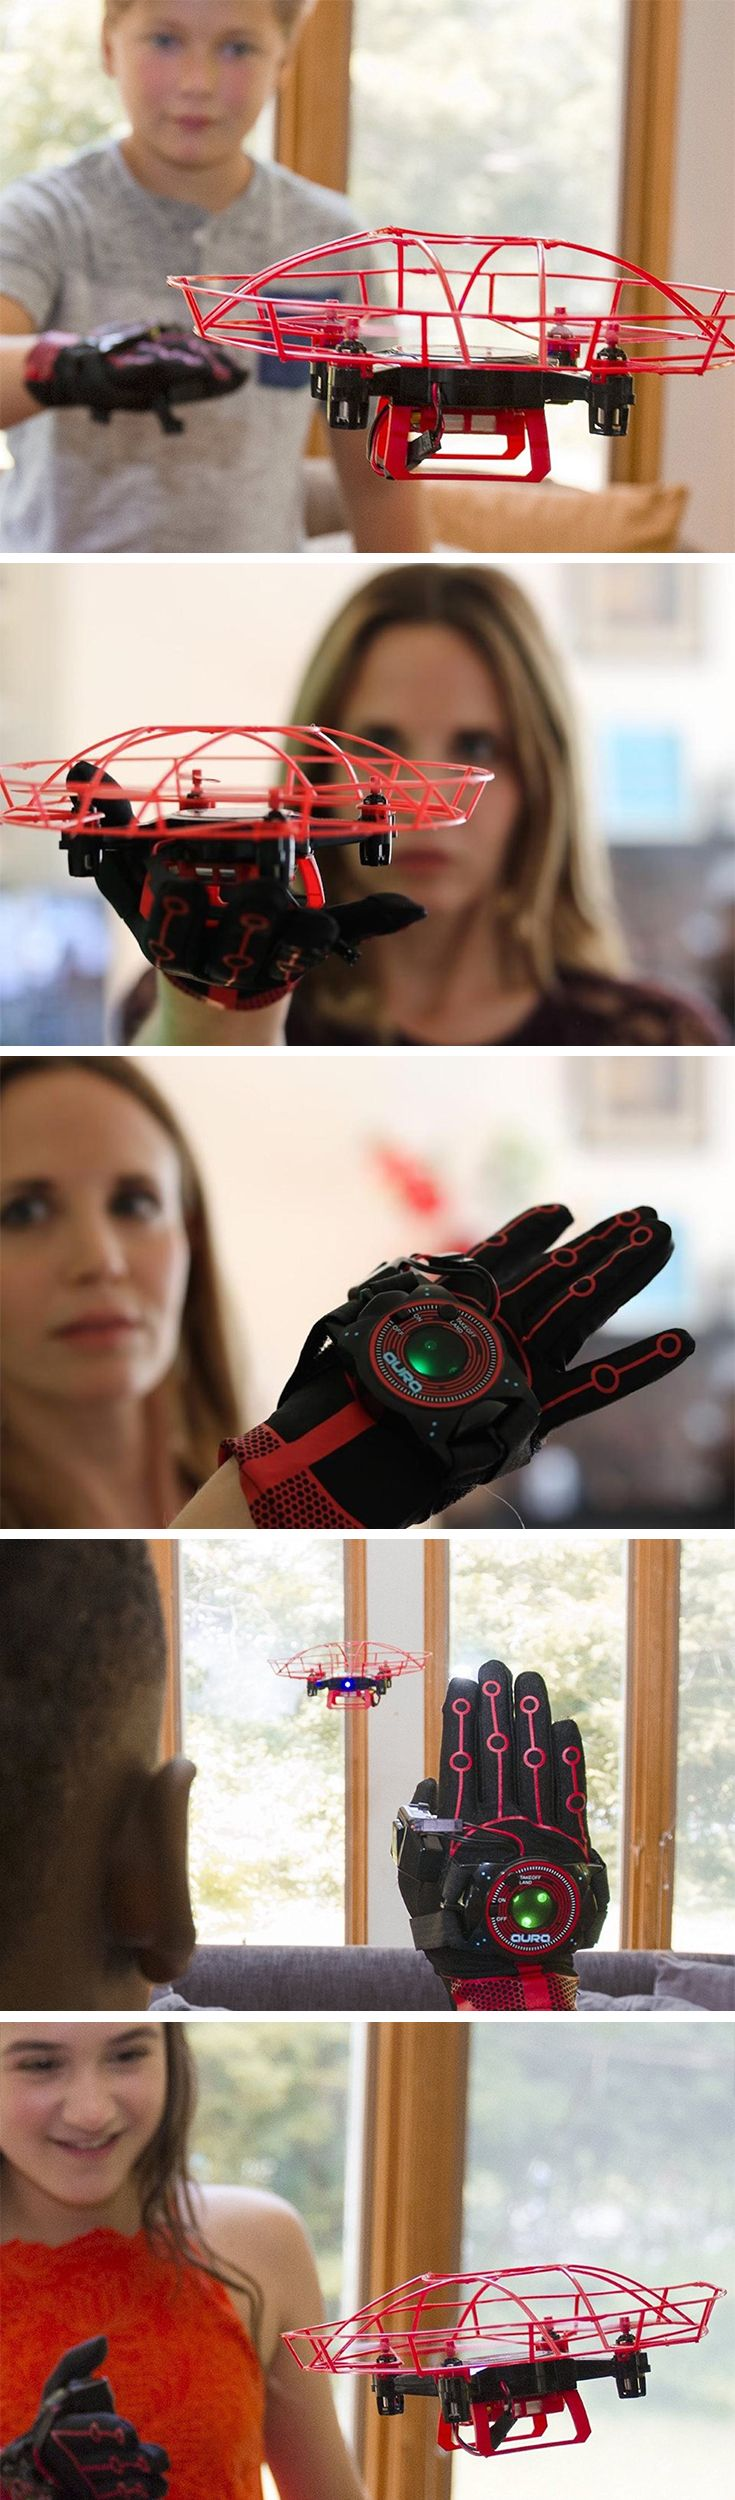 The KD Aura Interactive Gesture Drone does exactly what you think it does. It ditches the remote for gesture control. The drone comes with a glove that tracks your hand movements and even gestures that help send controls to the drone. Feeling almost like telekinesis (Jedi mind-tricks?), the glove offers control so smooth and intuitive, it's far easier to use than a remote. BUY NOW!